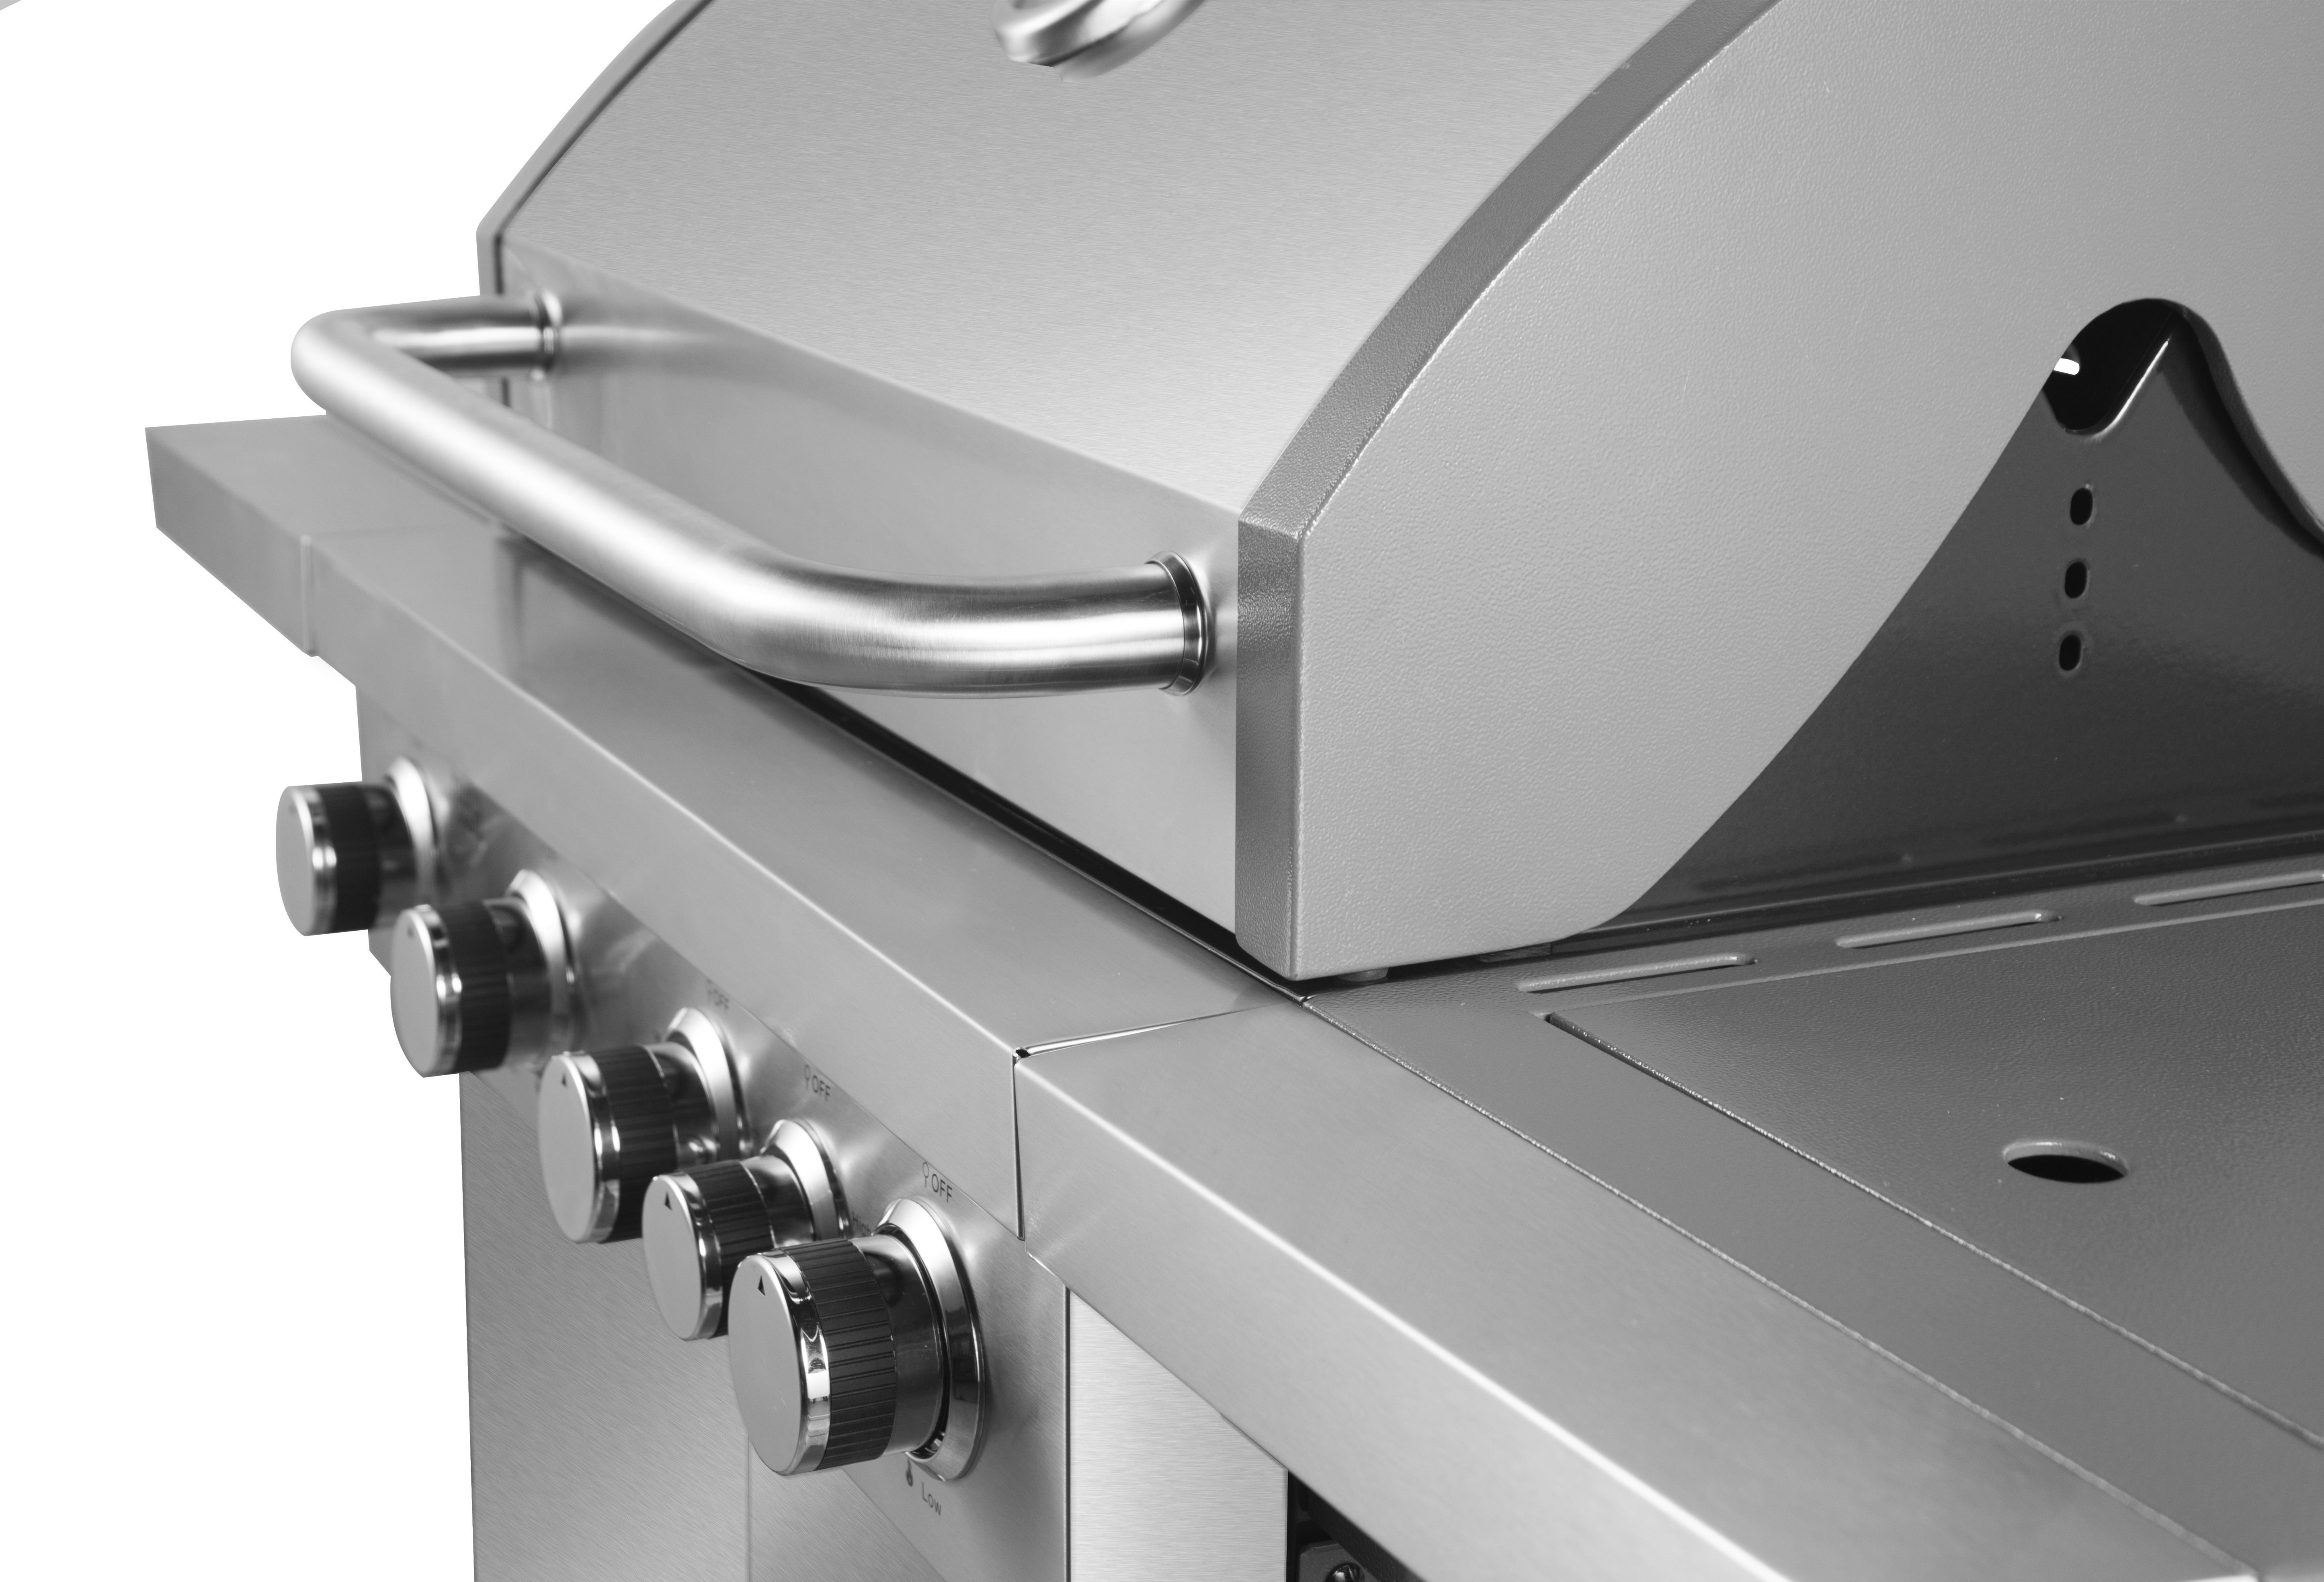 Portable Stainless Steel Gas BBQ Grill